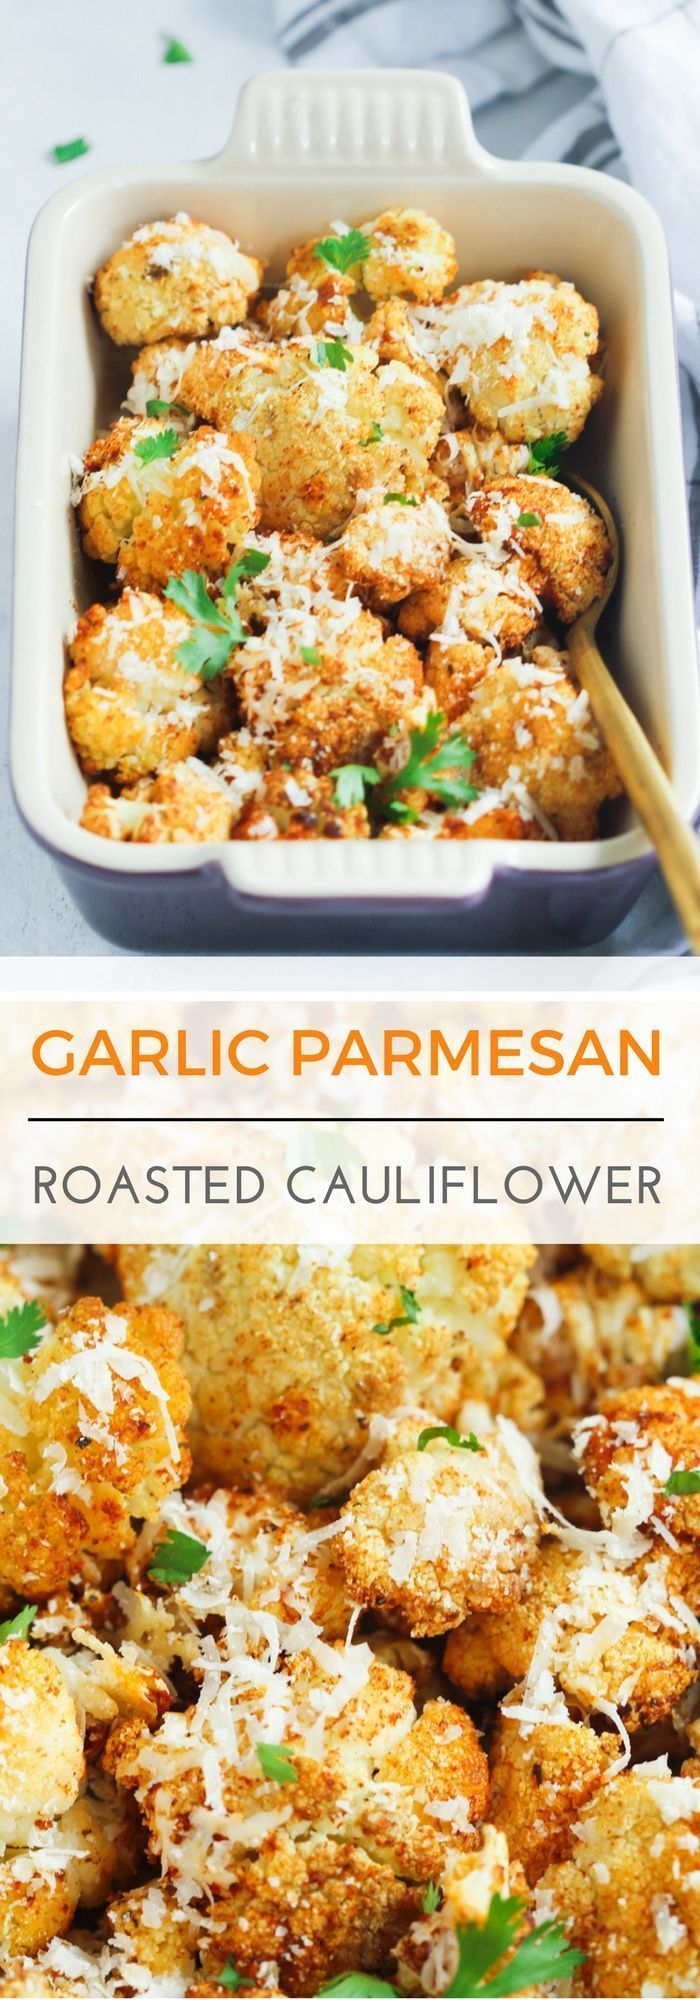 Garlic Parmesan Roasted Cauliflower - This easy Garlic Parmesan Roasted Cauliflower is a perfect low-carb side dish for any occasion. It's well seasoned with garlic, black pepper, paprika and Parmesan. |